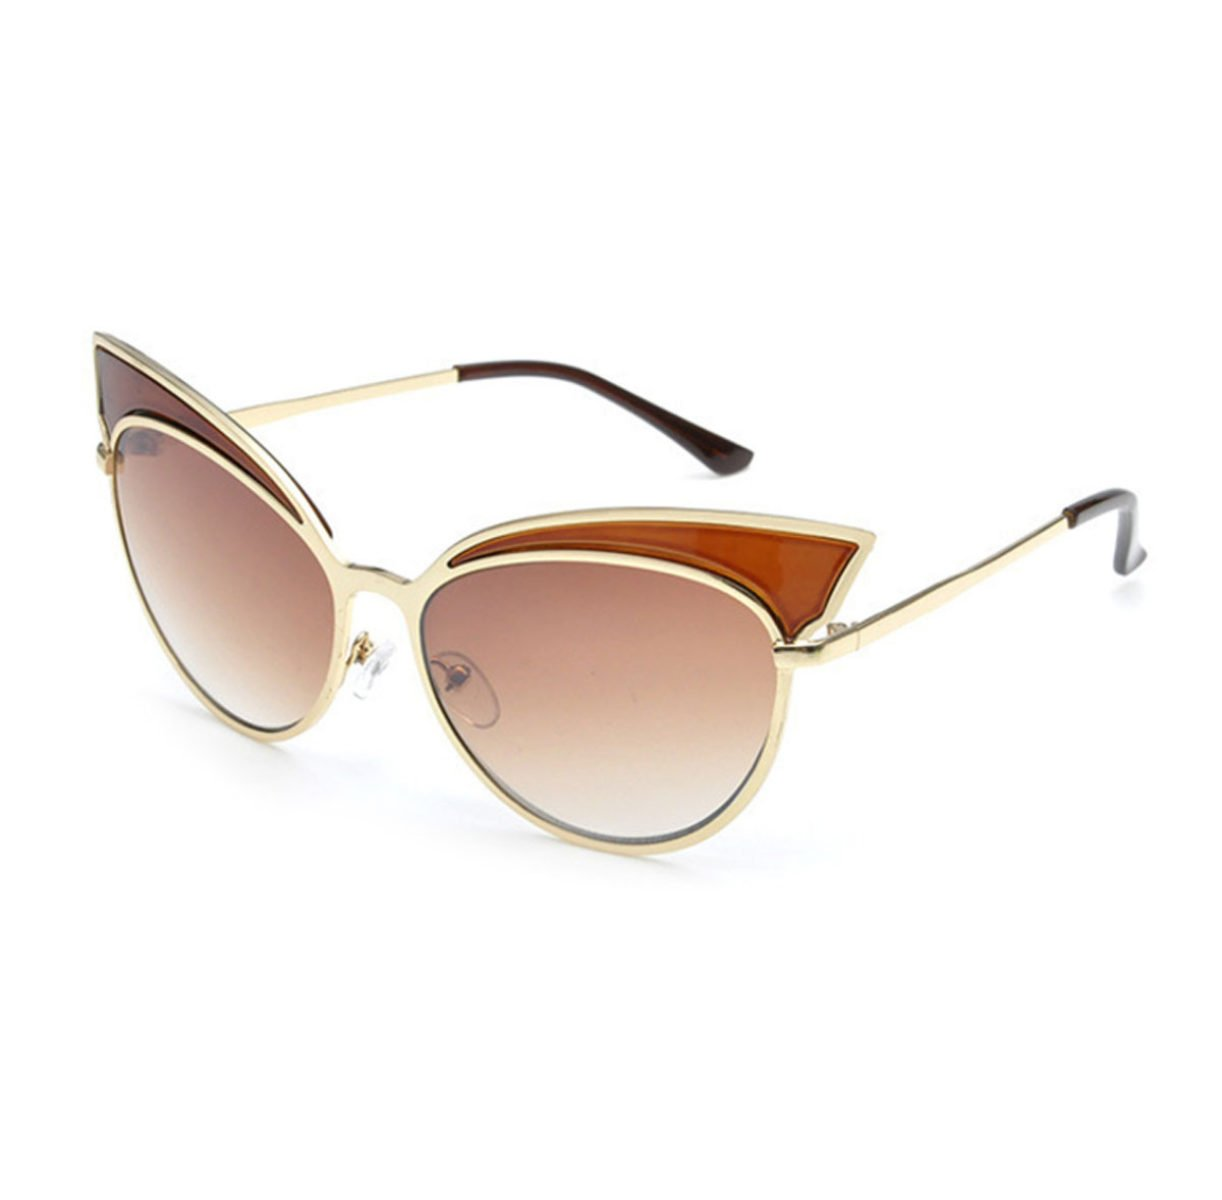 HAOYUXIANG Outdoor Mode Metall Farbe Film Sonnenbrille,C4